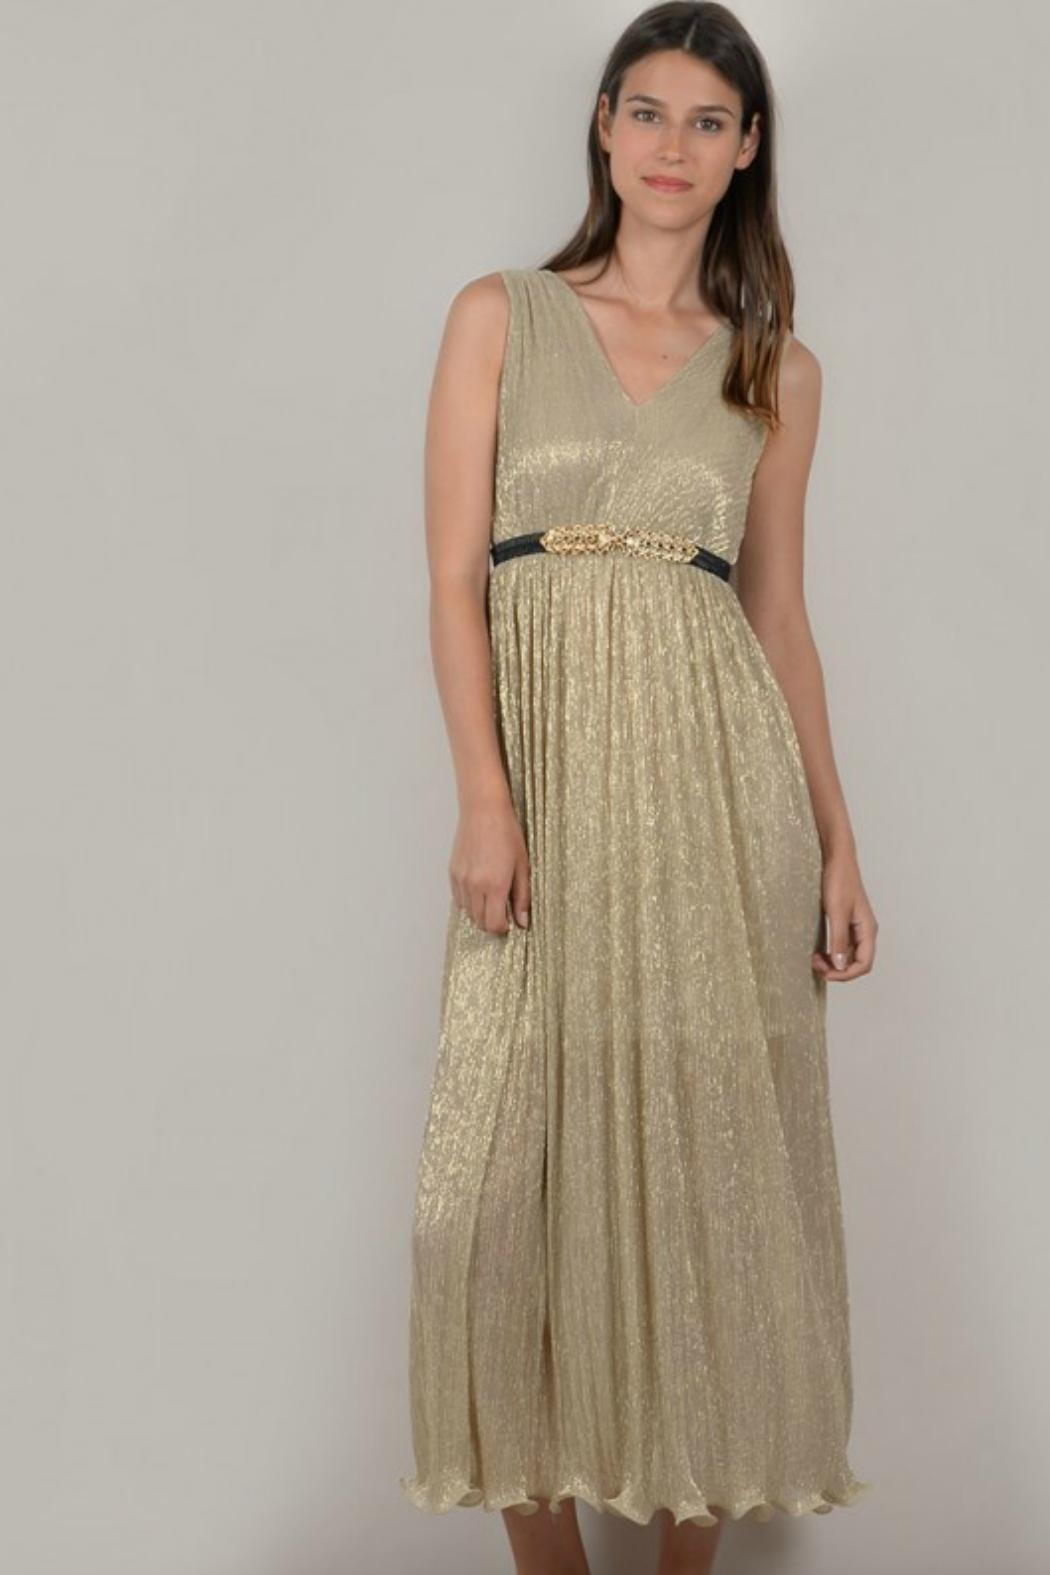 bfca0bfc74ef9 Molly Bracken Gold Dress from Canada by LaBelle — Shoptiques